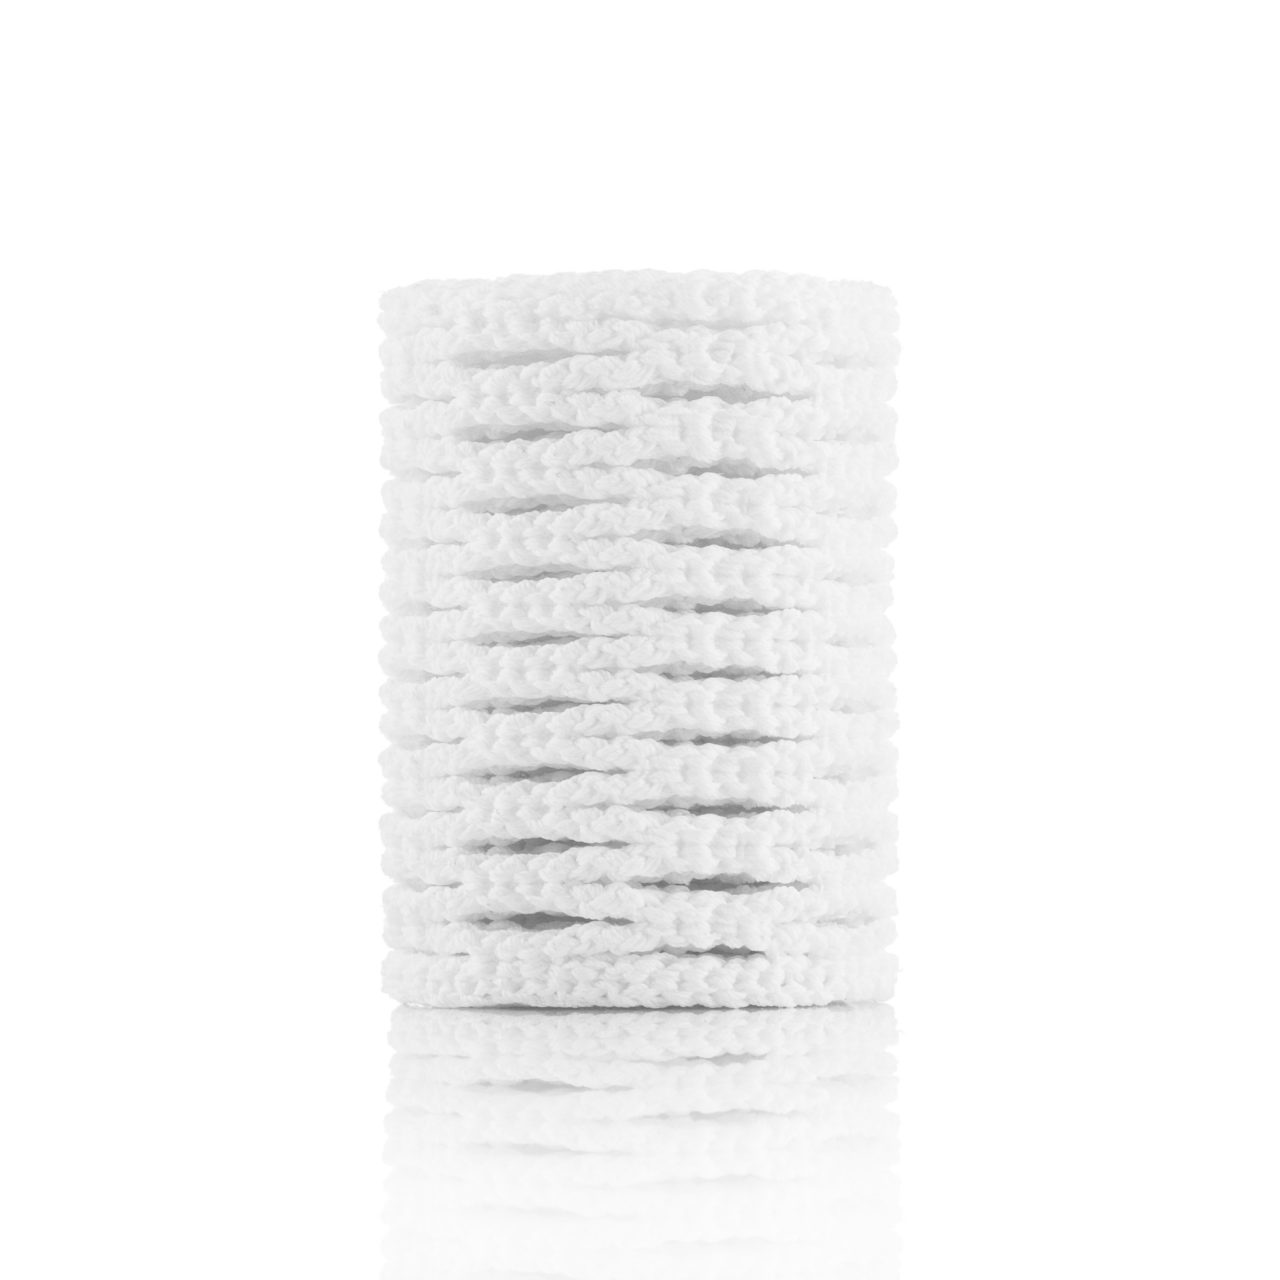 StringKing Type 4 Performance Lacrosse Mesh Roll White